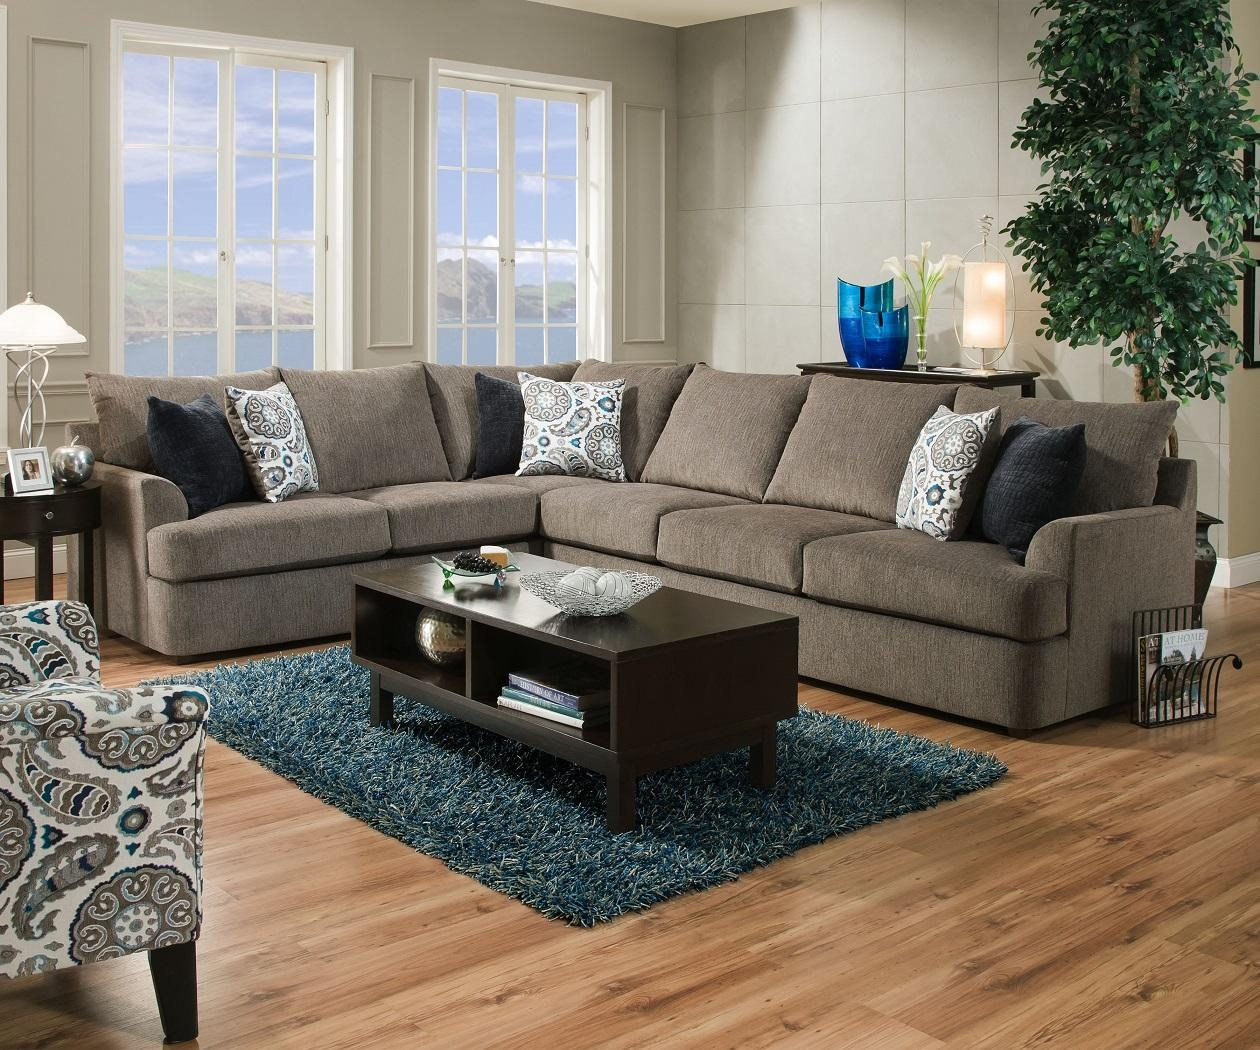 United Simmons Grandstand 8540 Beautyrest Grey Sectional Sofa Intended For Simmons Sofas (View 14 of 20)